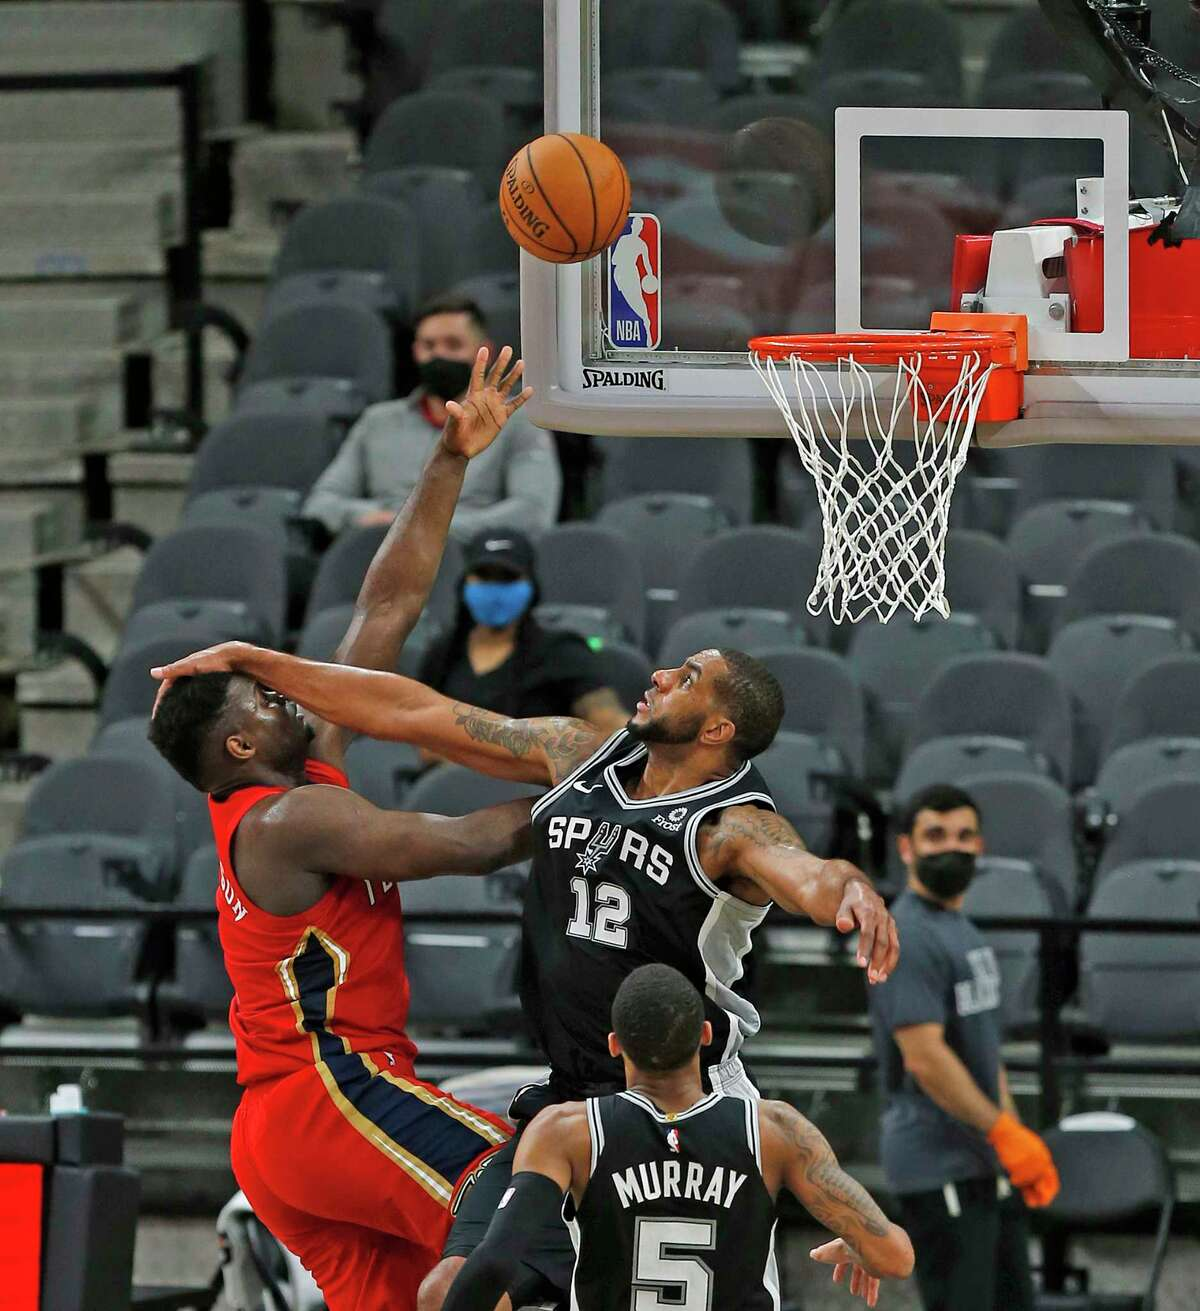 SAN ANTONIO, TX - FEBRUARY 27: LaMarcus Aldridge #12 of the San Antonio Spurs fouls Zion Williamson #1 of the New Orleans Pelicans in the first half at AT&T Center on February 27, 2021 in San Antonio, Texas. NOTE TO USER: User expressly acknowledges and agrees that , by downloading and or using this photograph, User is consenting to the terms and conditions of the Getty Images License Agreement. (Photo by Ronald Cortes/Getty Images)